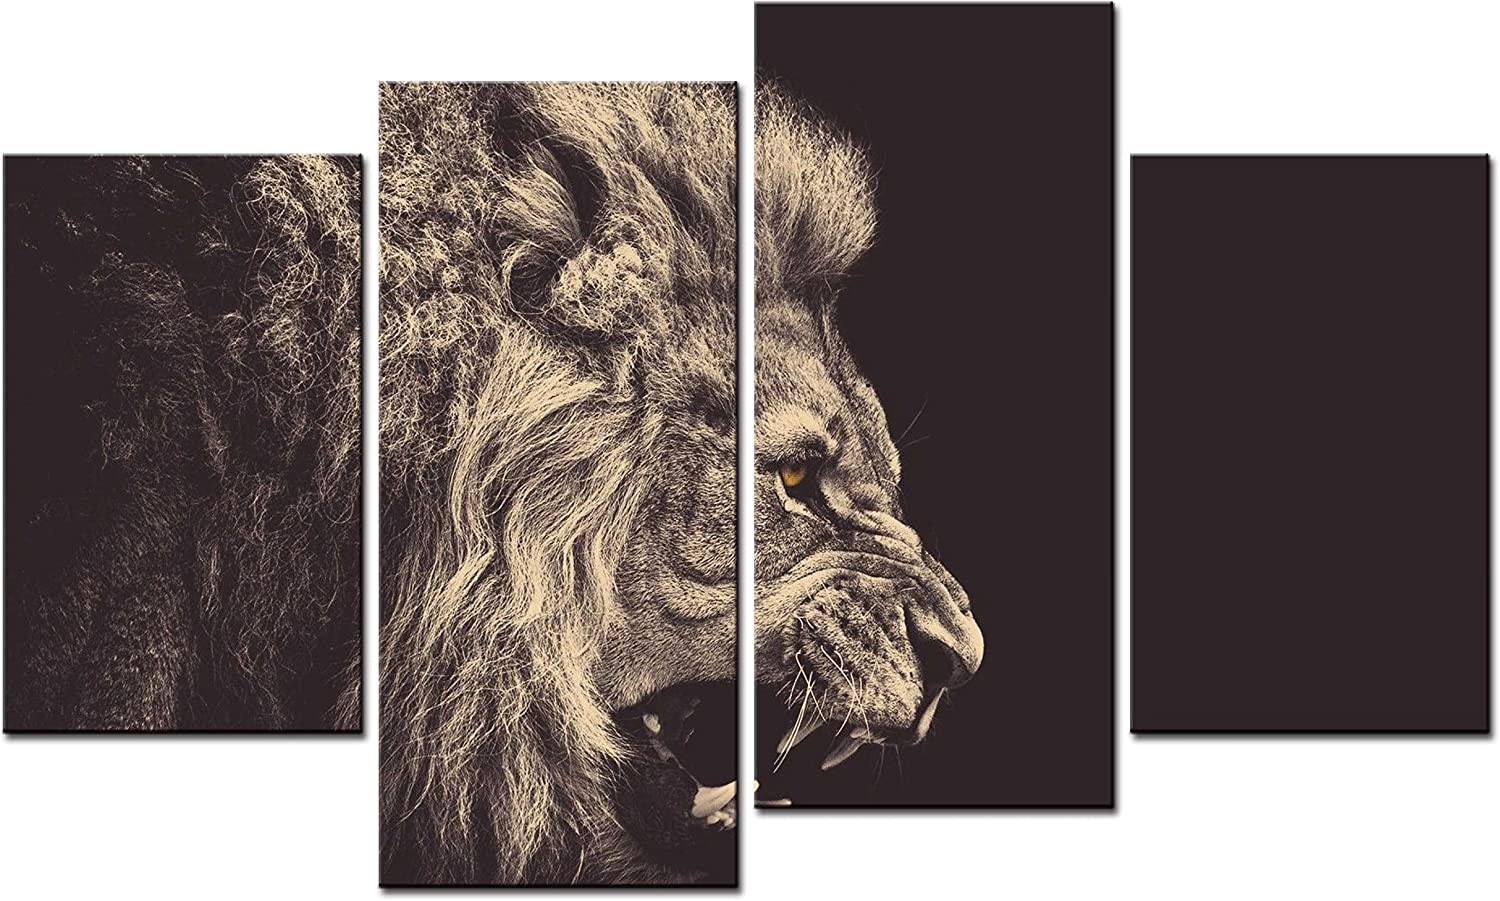 SmartWallArt - Animal Paintings Wall Art a Ferocious Lion Crack and Roar Staring Into the Distance 4 Pieces Picture Print on Canvas for Modern Home Decoration